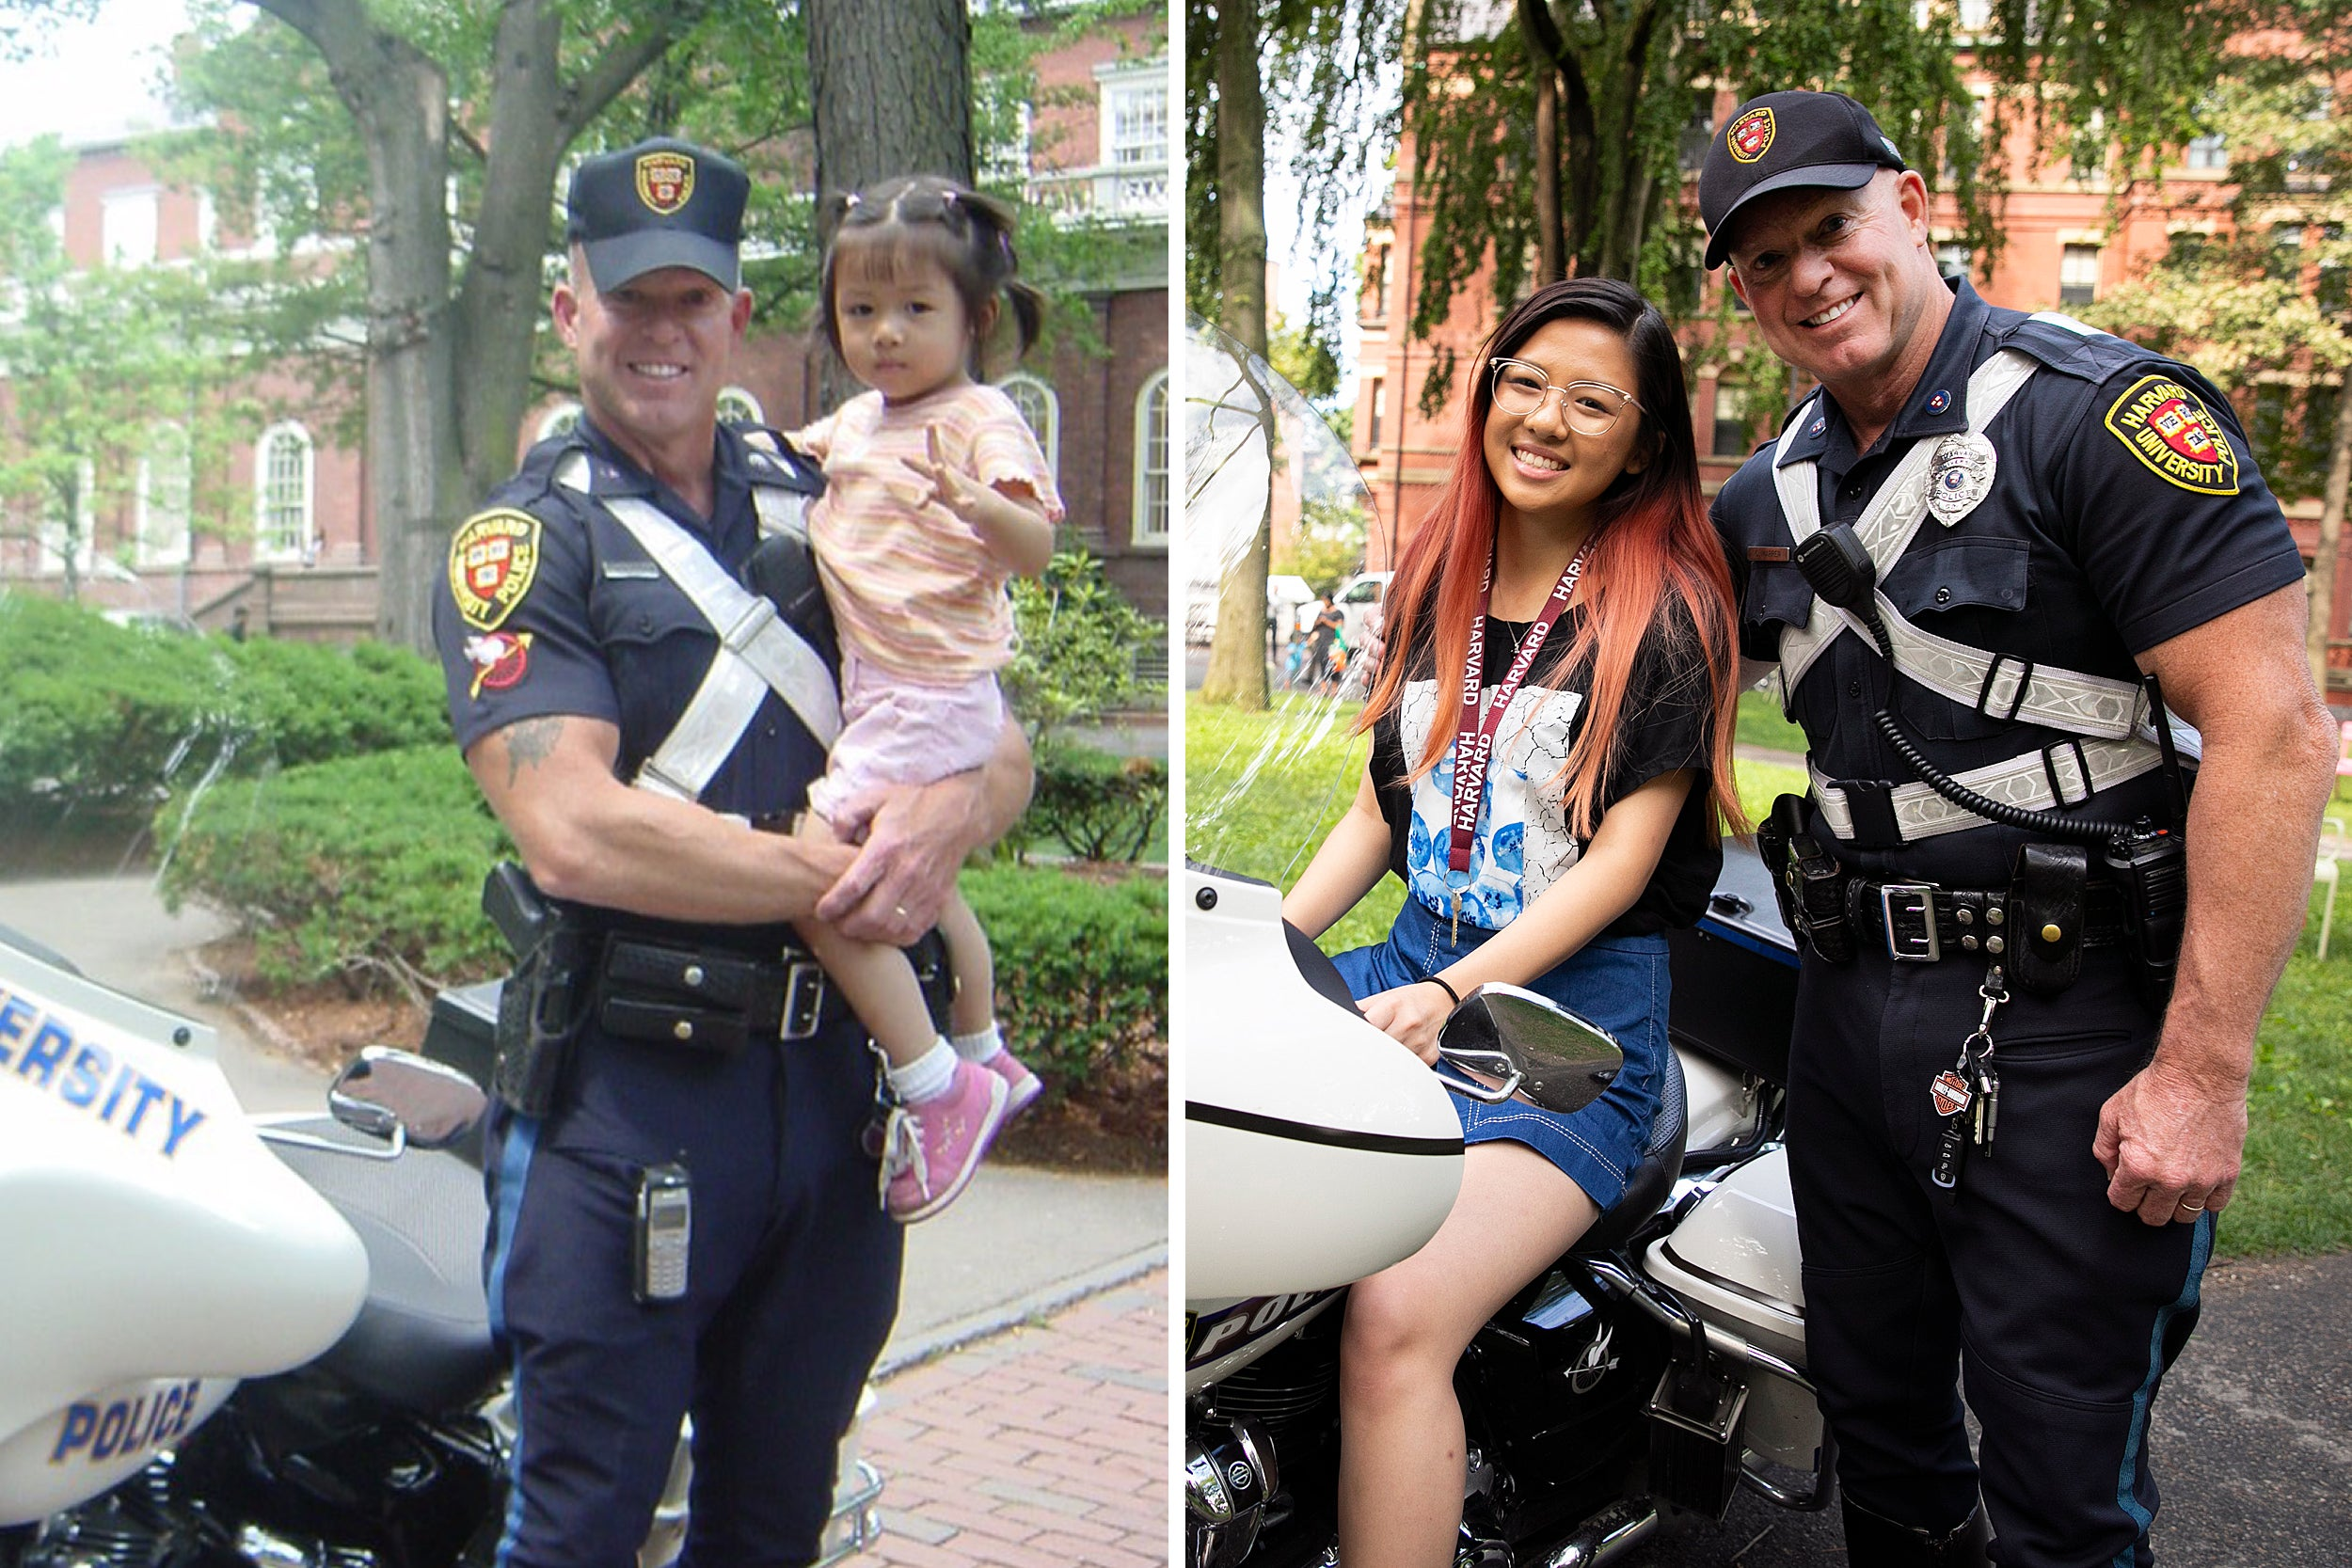 Charles Marren holds a 3-year-old Crystal Wang in 2004. Wang reunited with Marren upon her return to Harvard as a member of the Class of '23.